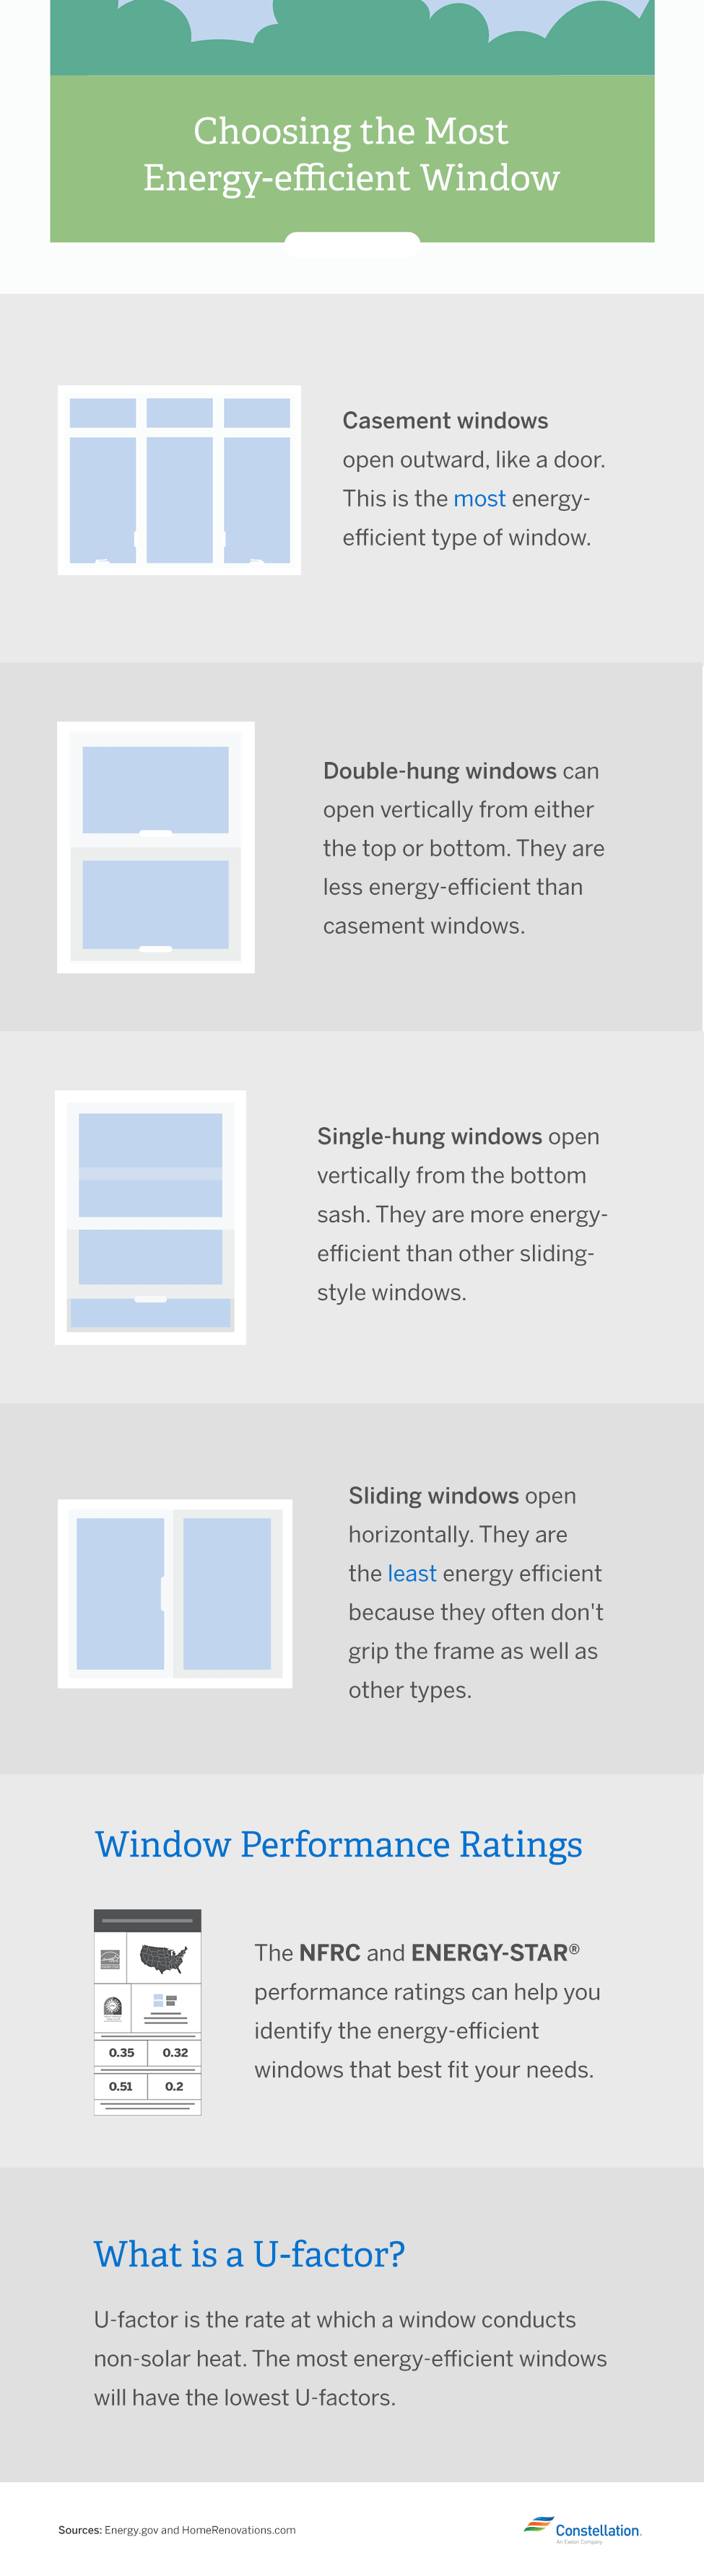 Energy efficient windows awesome selecting the best for Energy saving windows